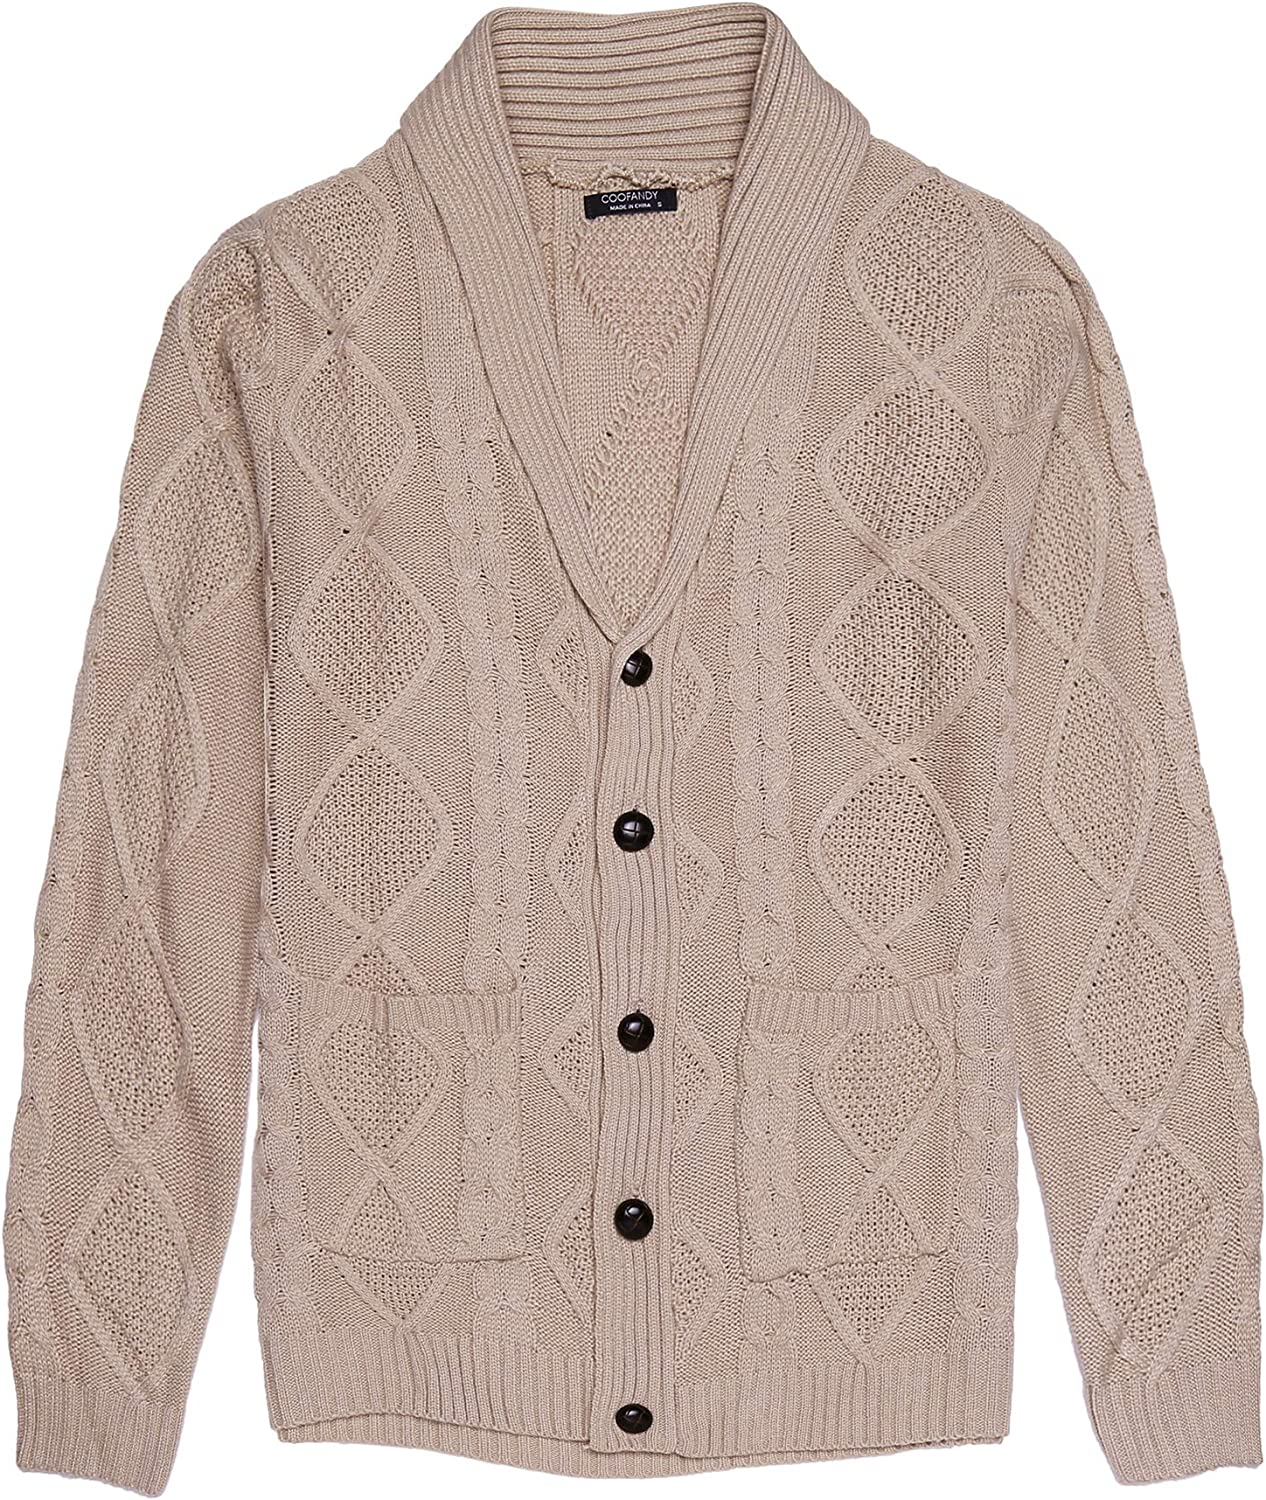 COOFANDY Men's Shawl Collar Cardigan Sweater Slim Fit Casual Button Down Cardigan Knitted Jacket